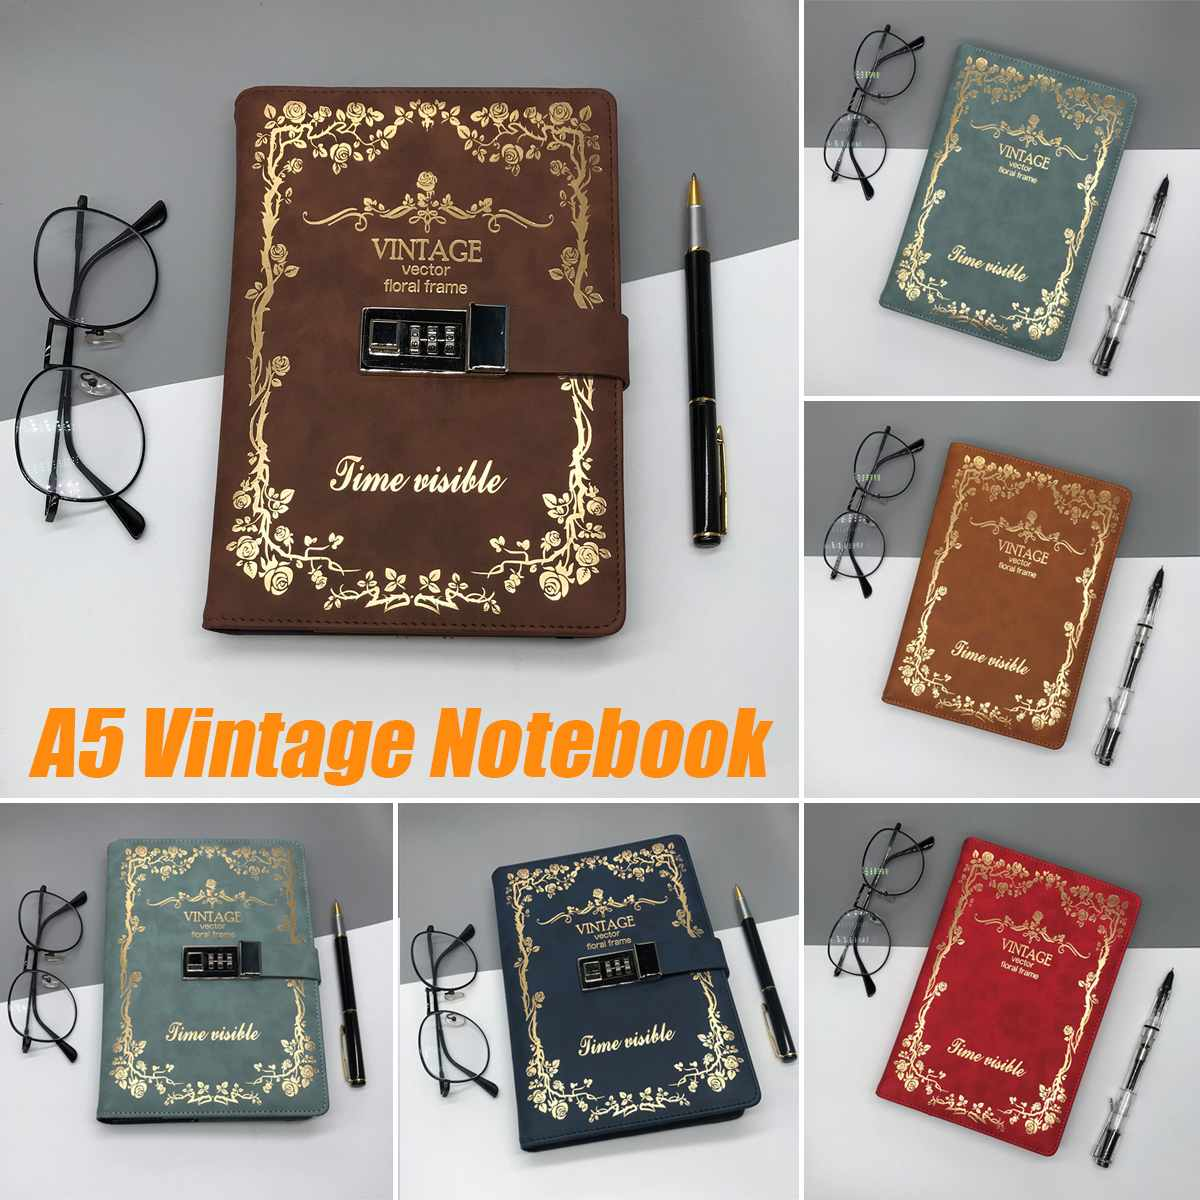 A5 Vintage Notebook Diary Notepad PU Leather Password With/without Lock Code Note Book Stationery School Office Gift